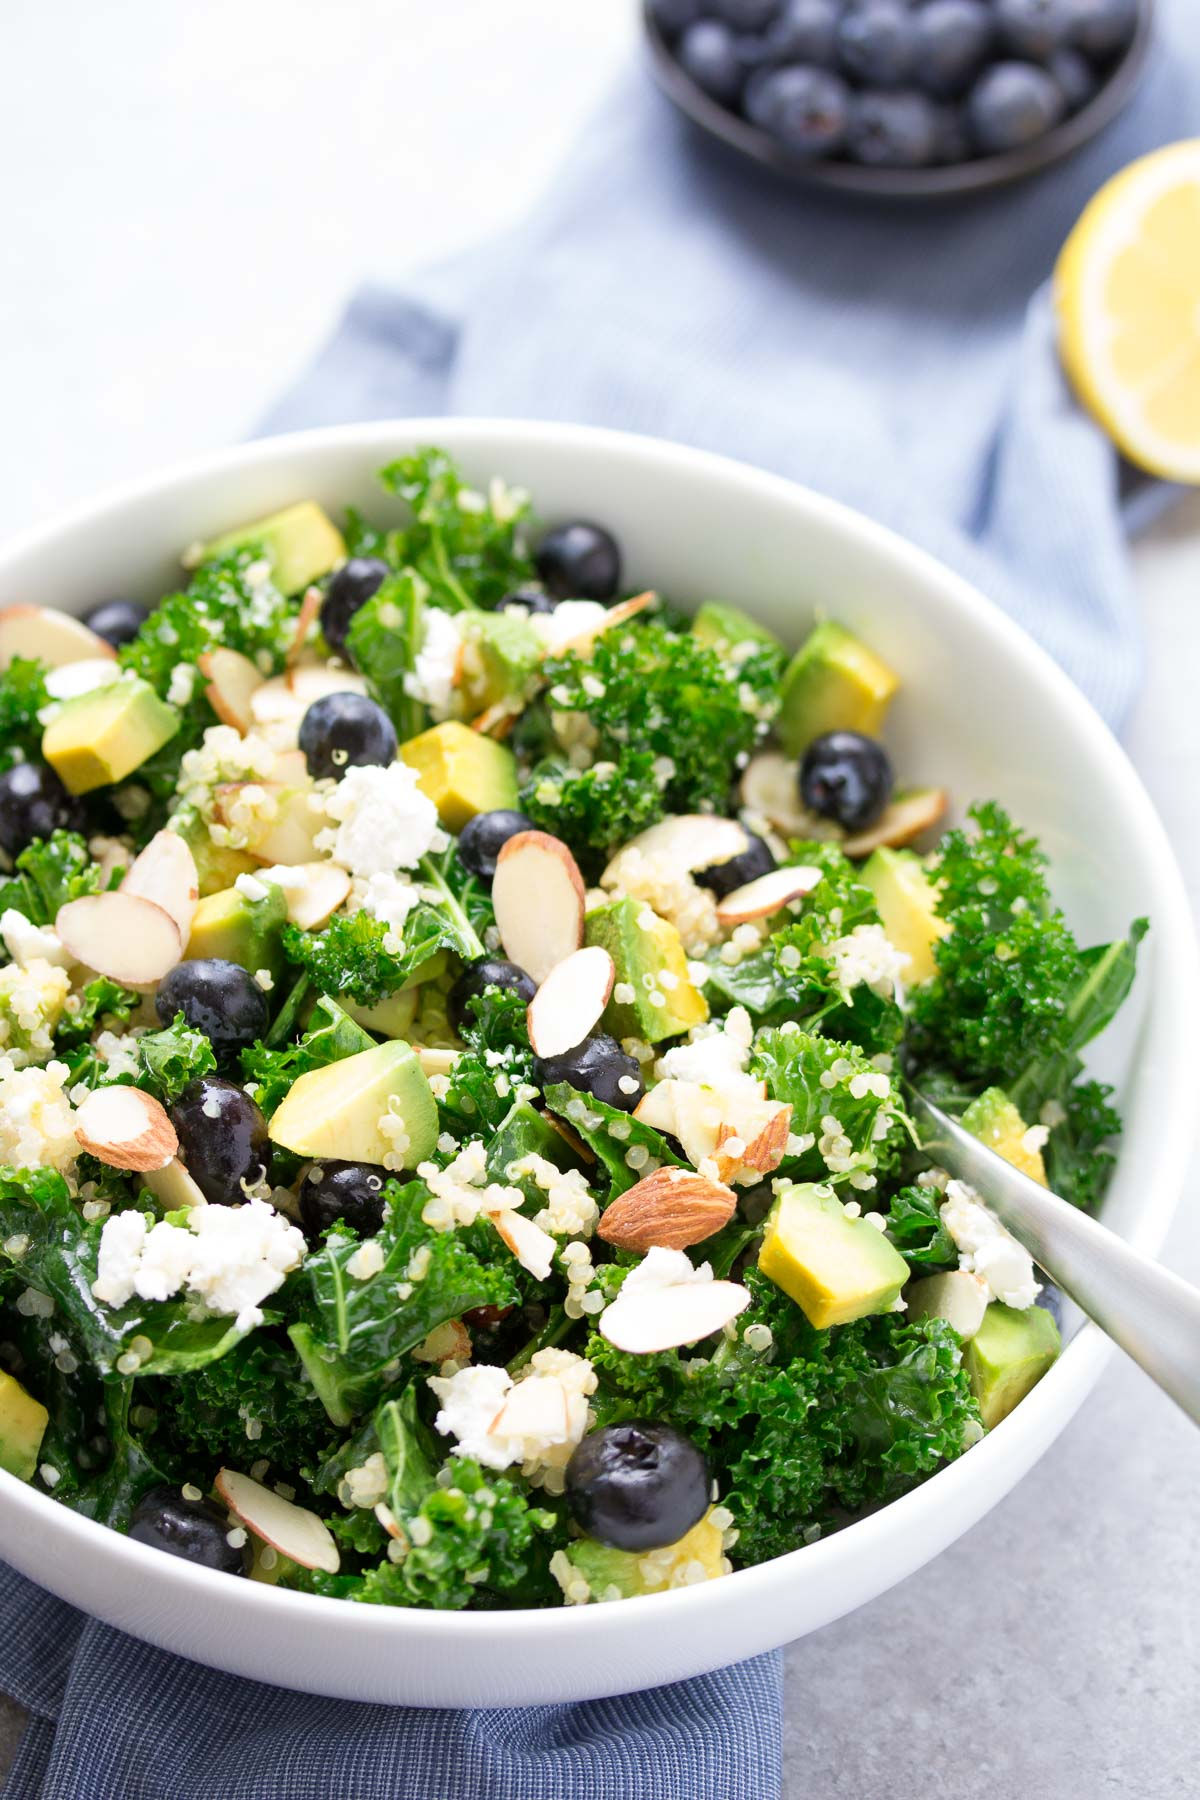 Kale Salad with avocado, quinoa, goat cheese, blueberries and almonds.